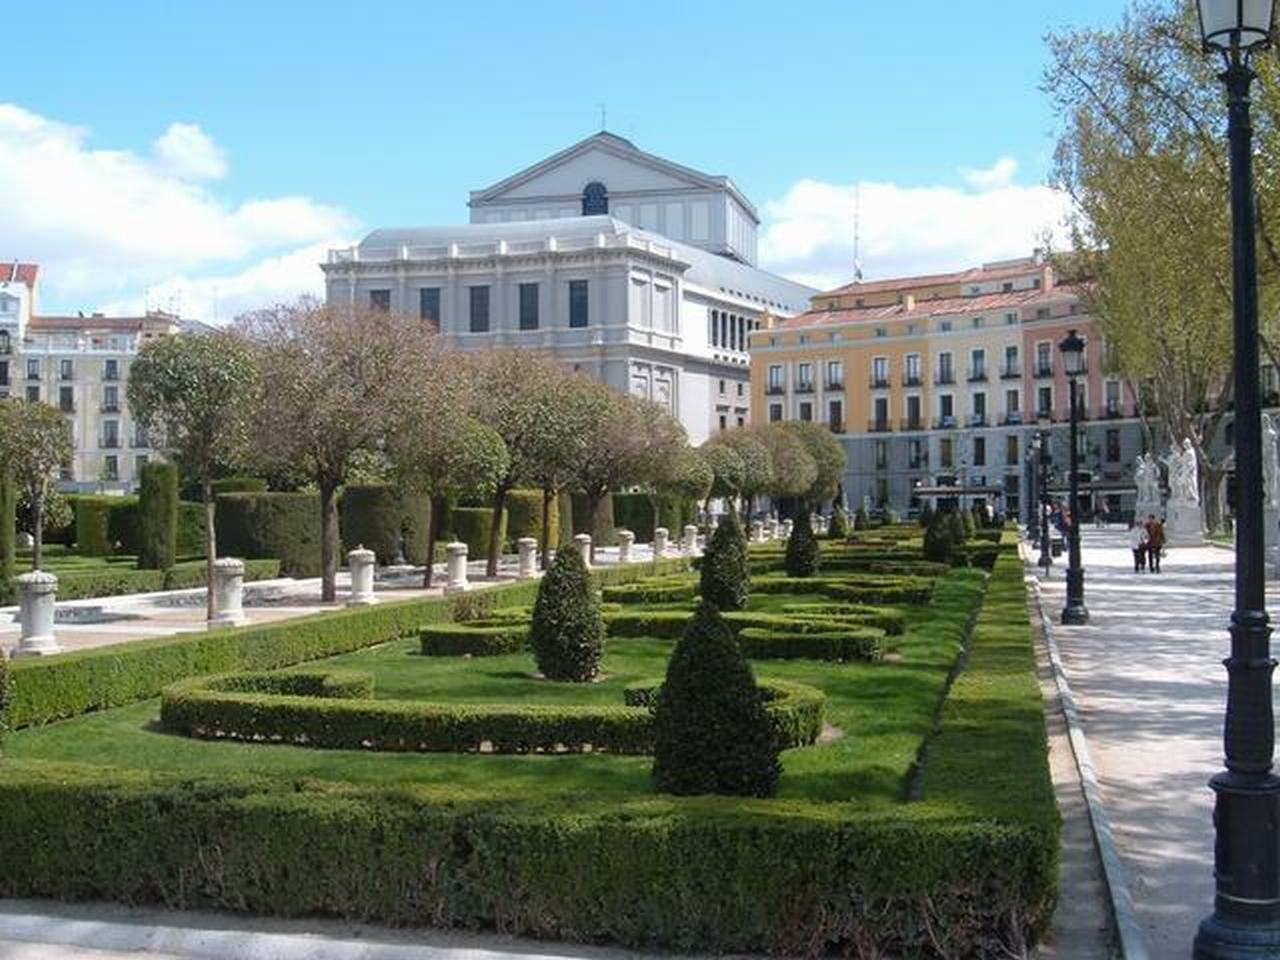 States In America File Plaza De Oriente Madrid 02 Jpg Wikimedia Commons